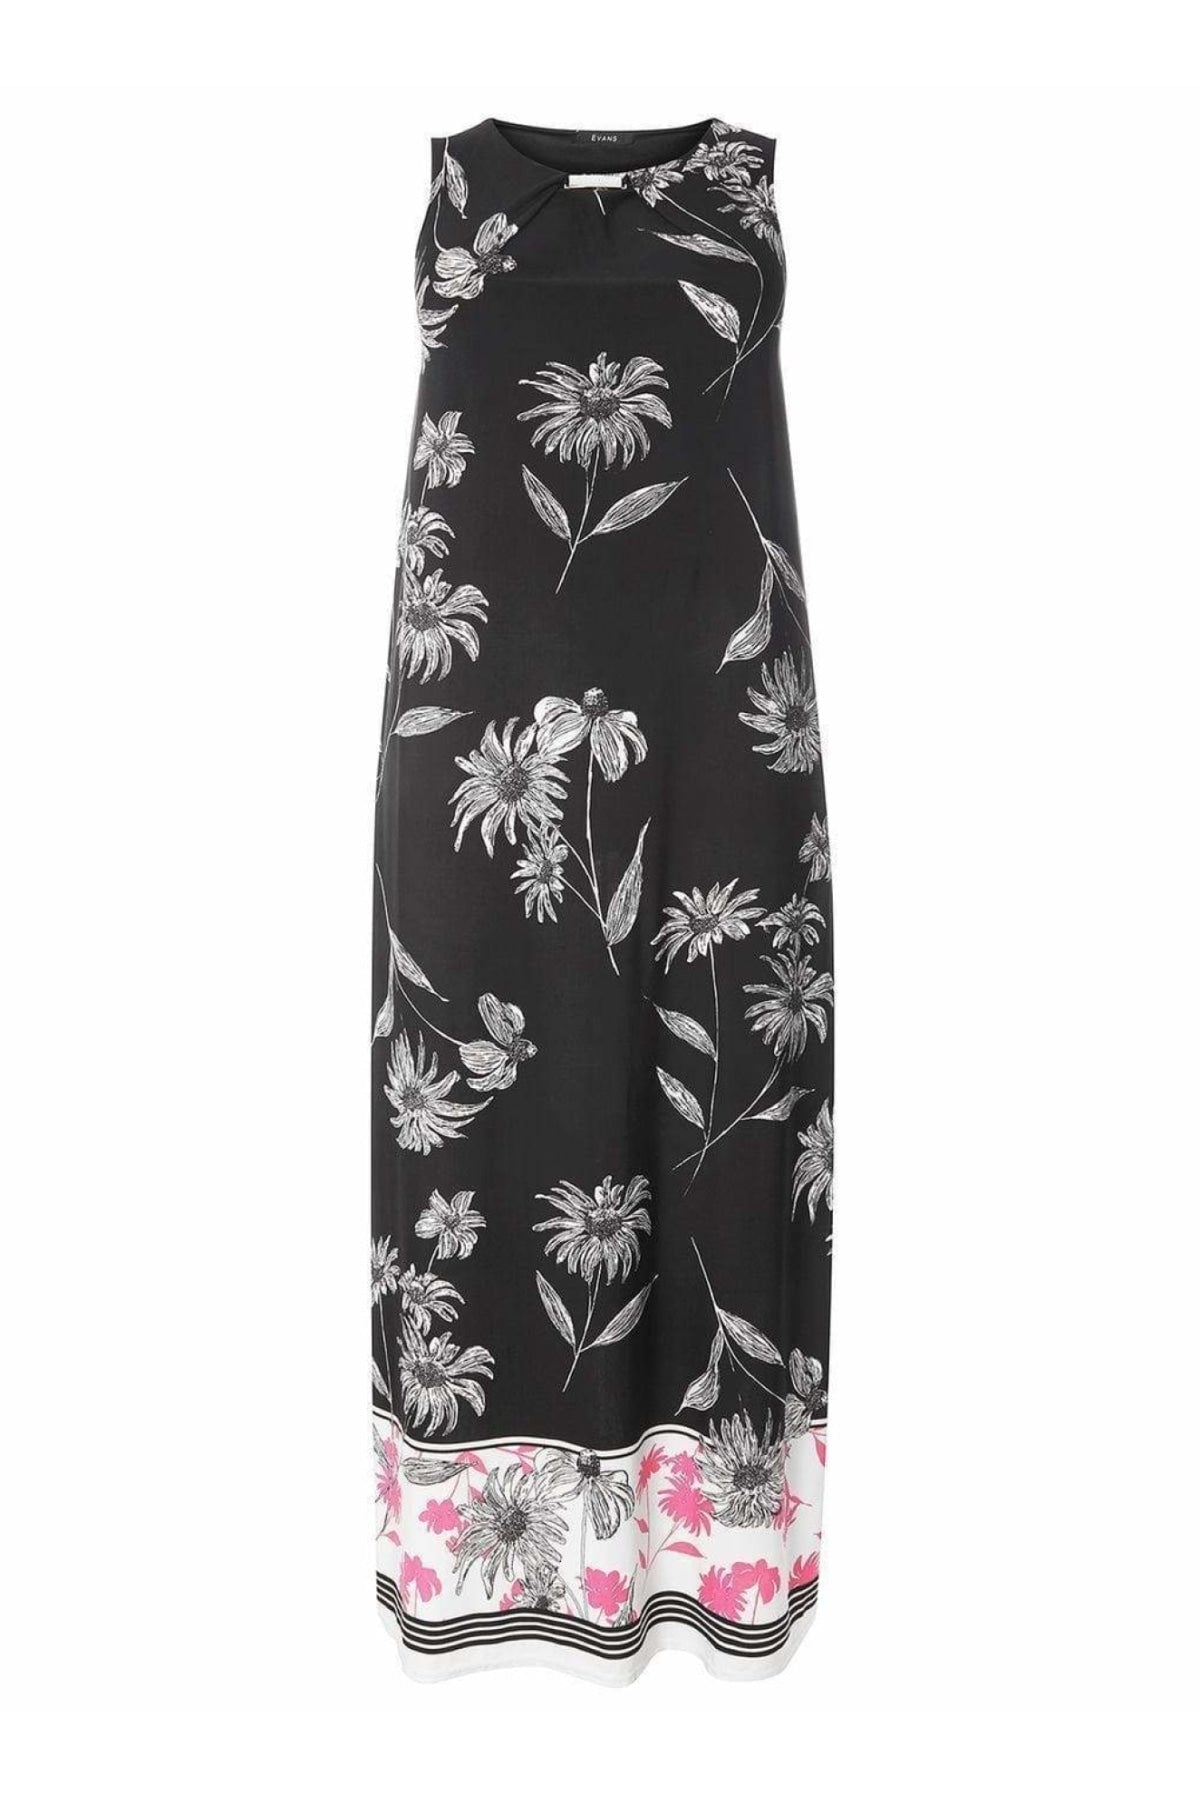 Evans Ex Evans Black/Pink Floral Sleeveless Dress | Secret Label